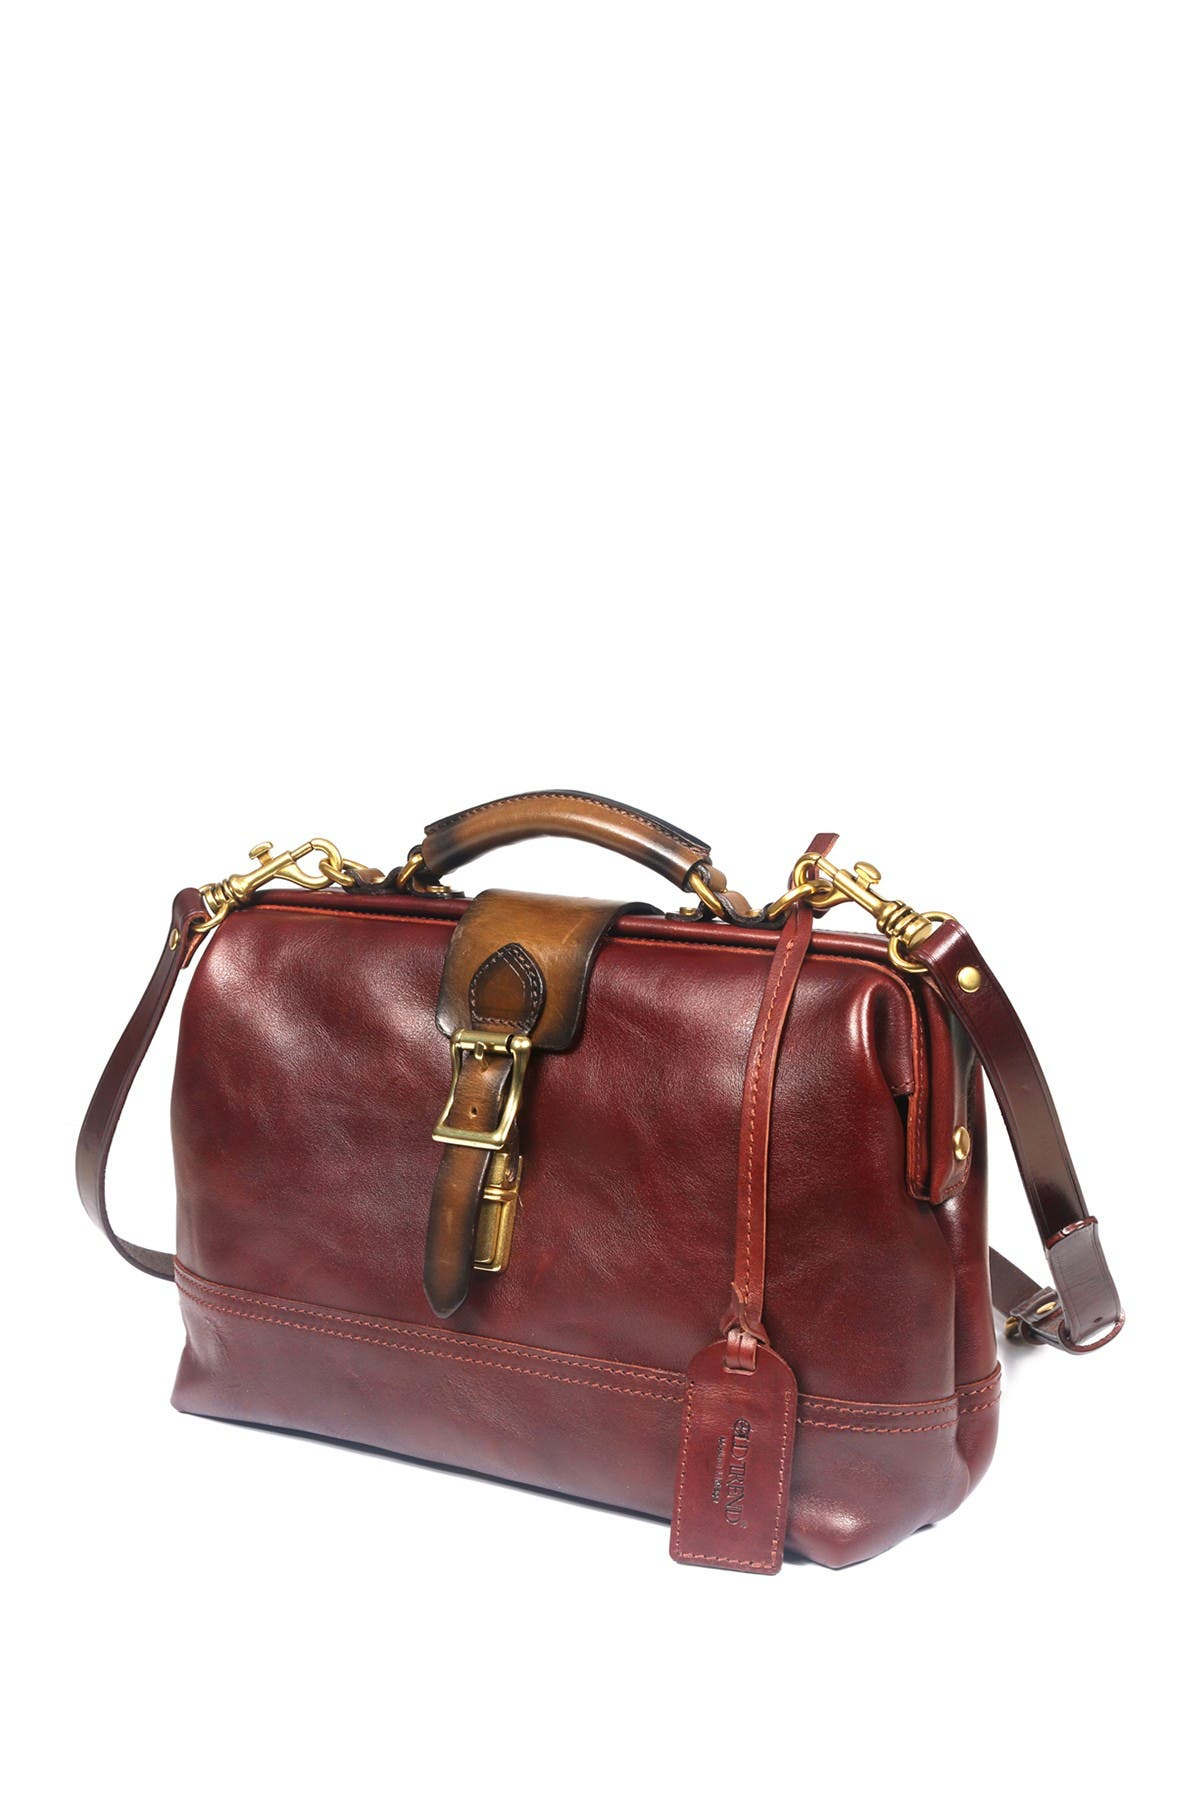 Old Trend DOCTOR SATCHEL